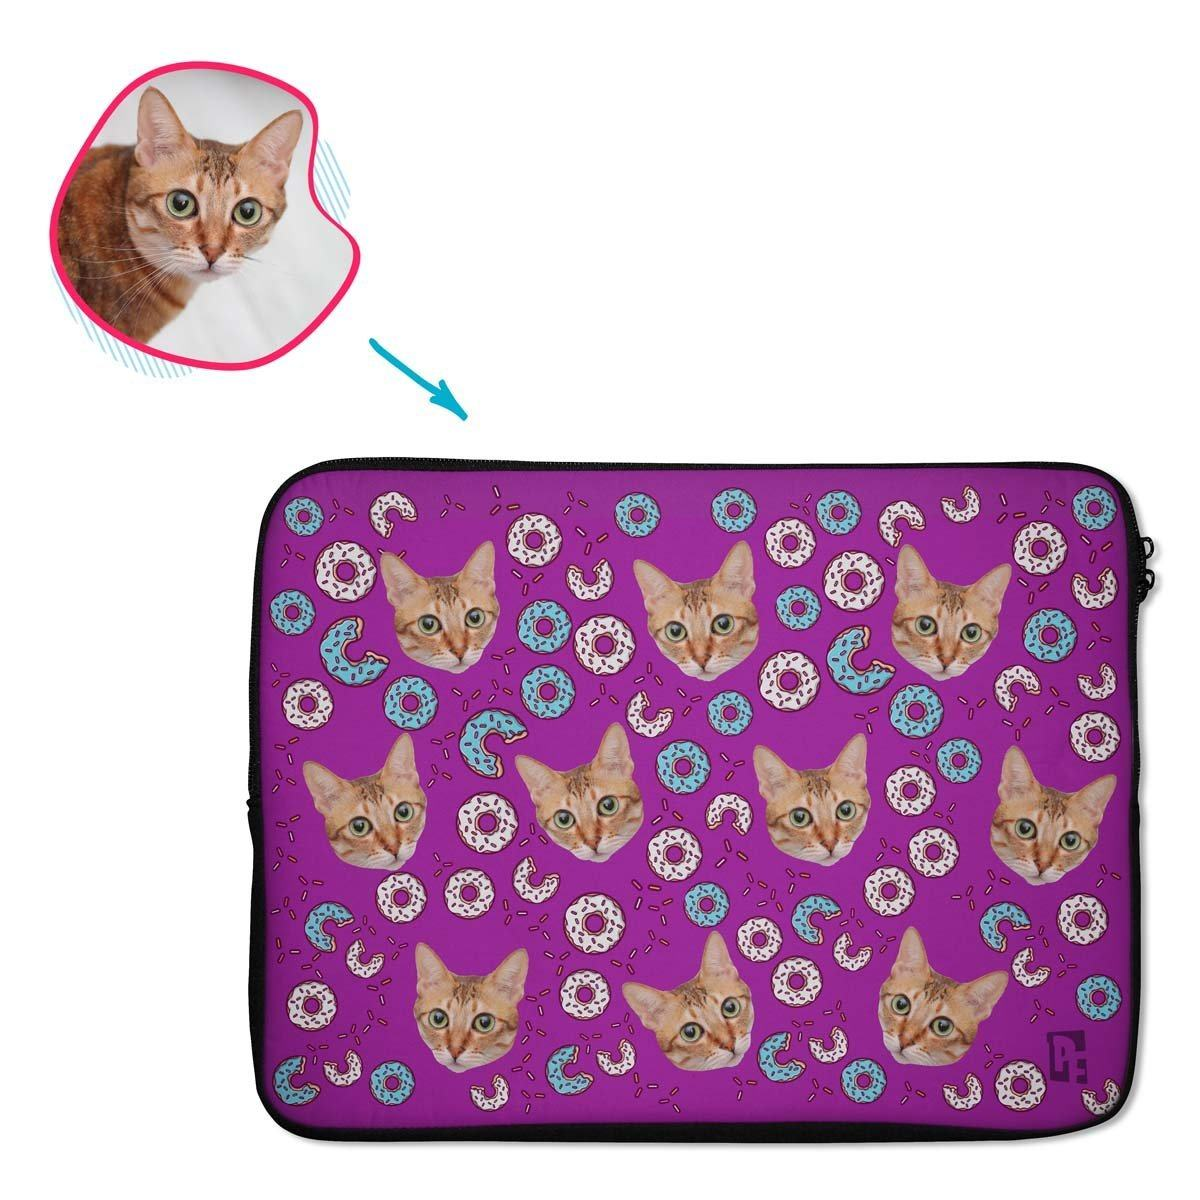 purple Donuts laptop sleeve personalized with photo of face printed on them